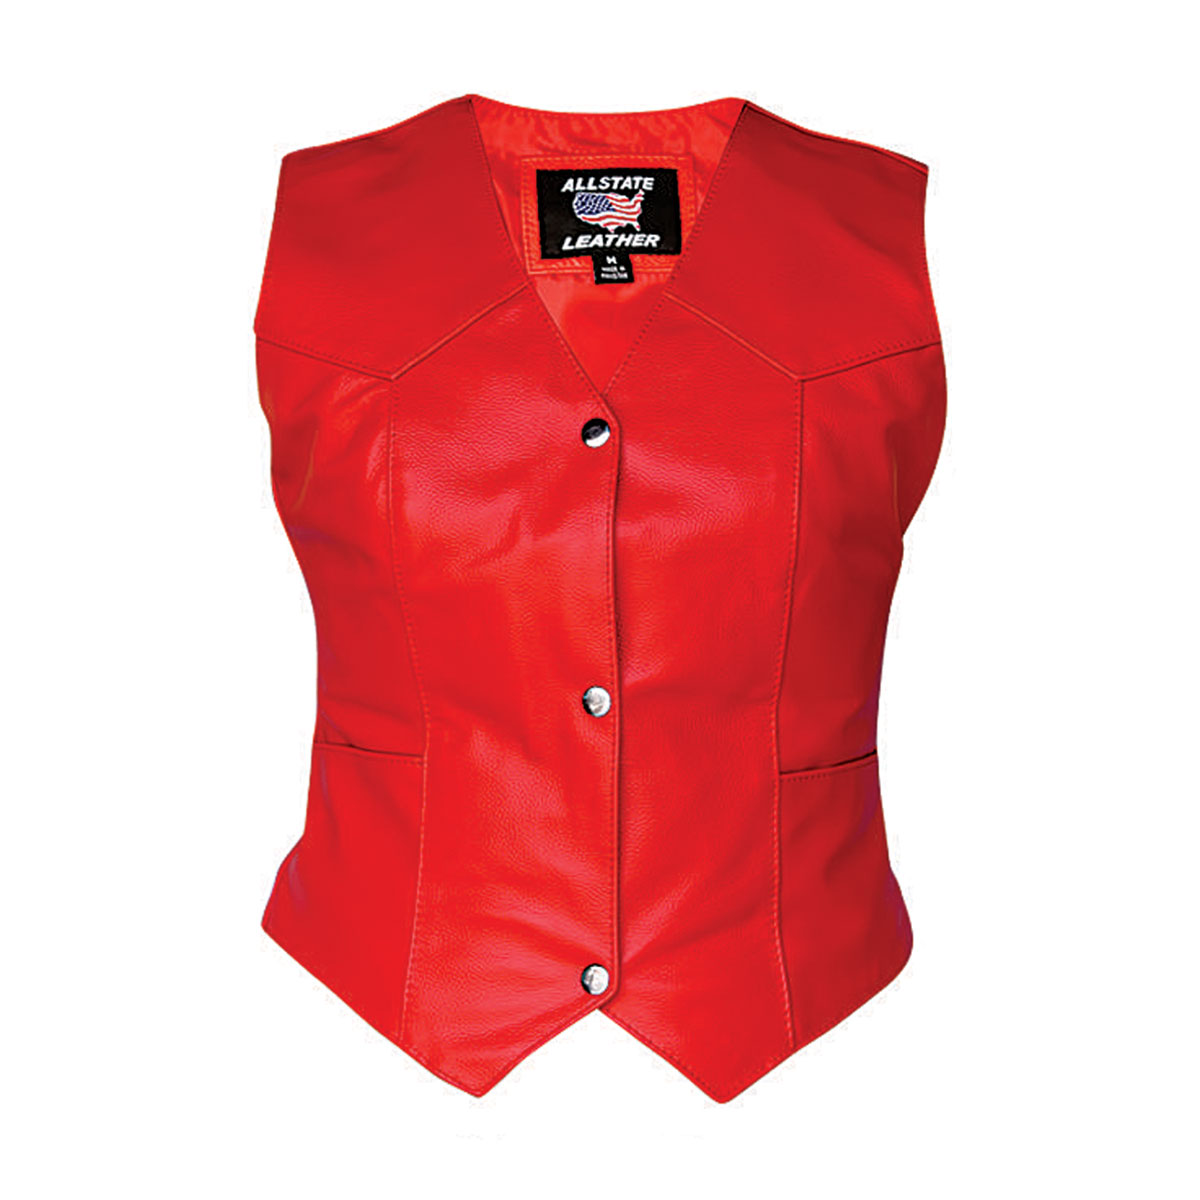 Allstate Leather Inc. Women′s Red Leather Vest